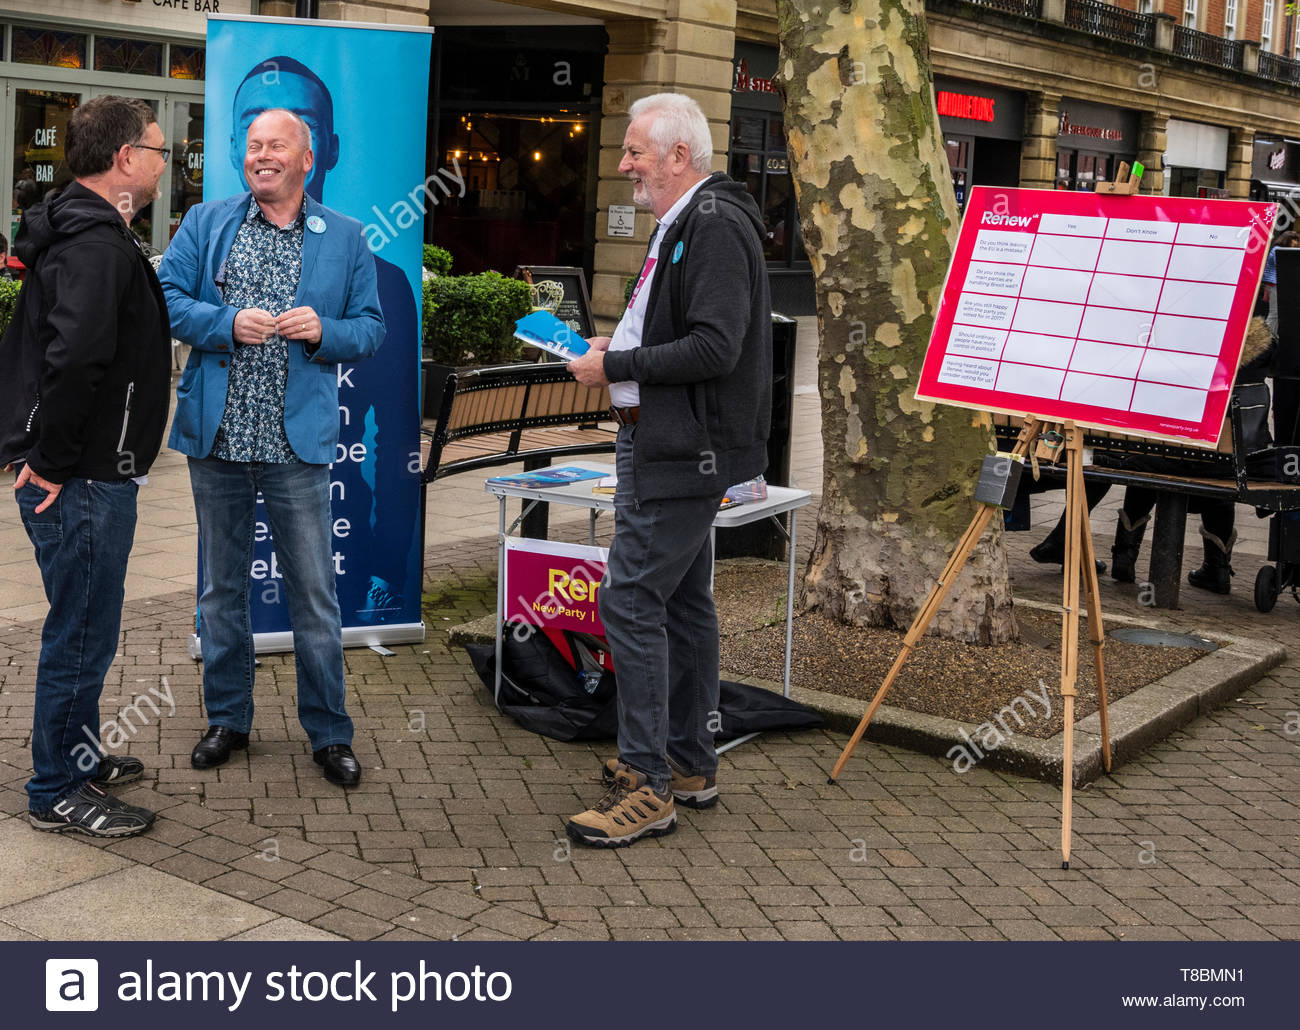 The Renew Party campaigning for the Peterborough by-election and the European Parliament elections in Peterborough on Saturday May 11th. 2019 - Stock Image